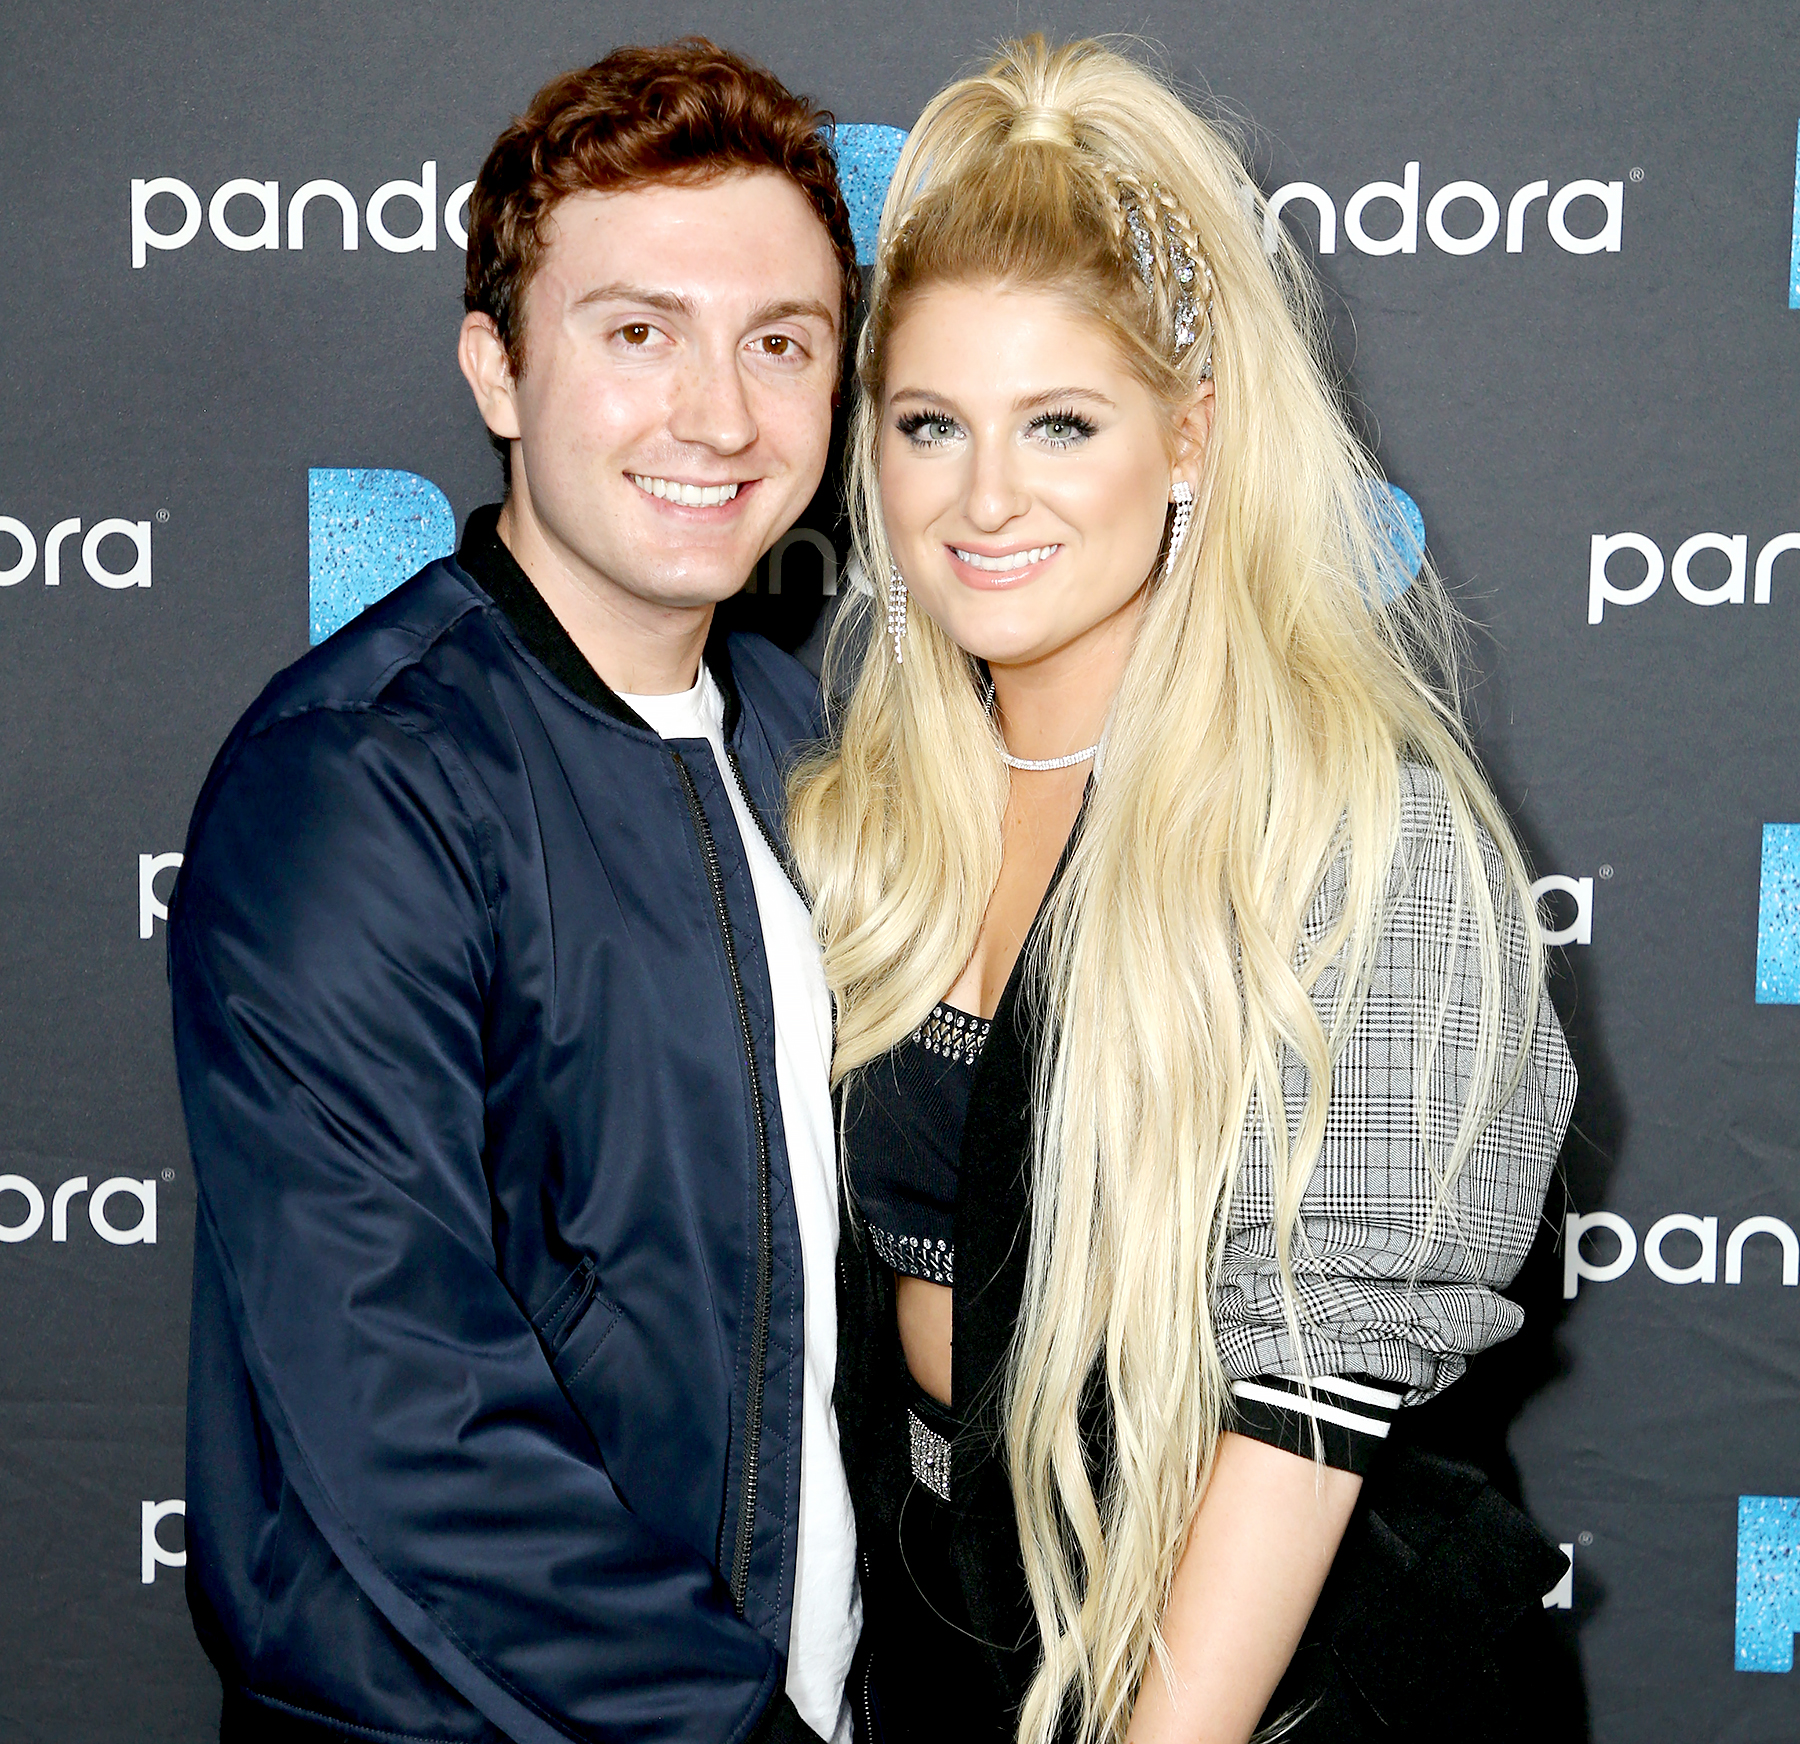 daryl sabara house mddaryl sabara age, daryl sabara 2019, daryl sabara meghan trainor, daryl sabara house md, daryl sabara instagram, daryl sabara wedding, daryl sabara gravity falls, daryl sabara height, daryl sabara in friends, daryl sabara wedding dance, daryl sabara and meghan trainor wedding, daryl sabara, daryl sabara net worth, daryl sabara wife, daryl sabara imdb, daryl sabara 2018, daryl sabara wizards of waverly place, daryl sabara grimm, daryl sabara and alexa vega, daryl sabara polar express